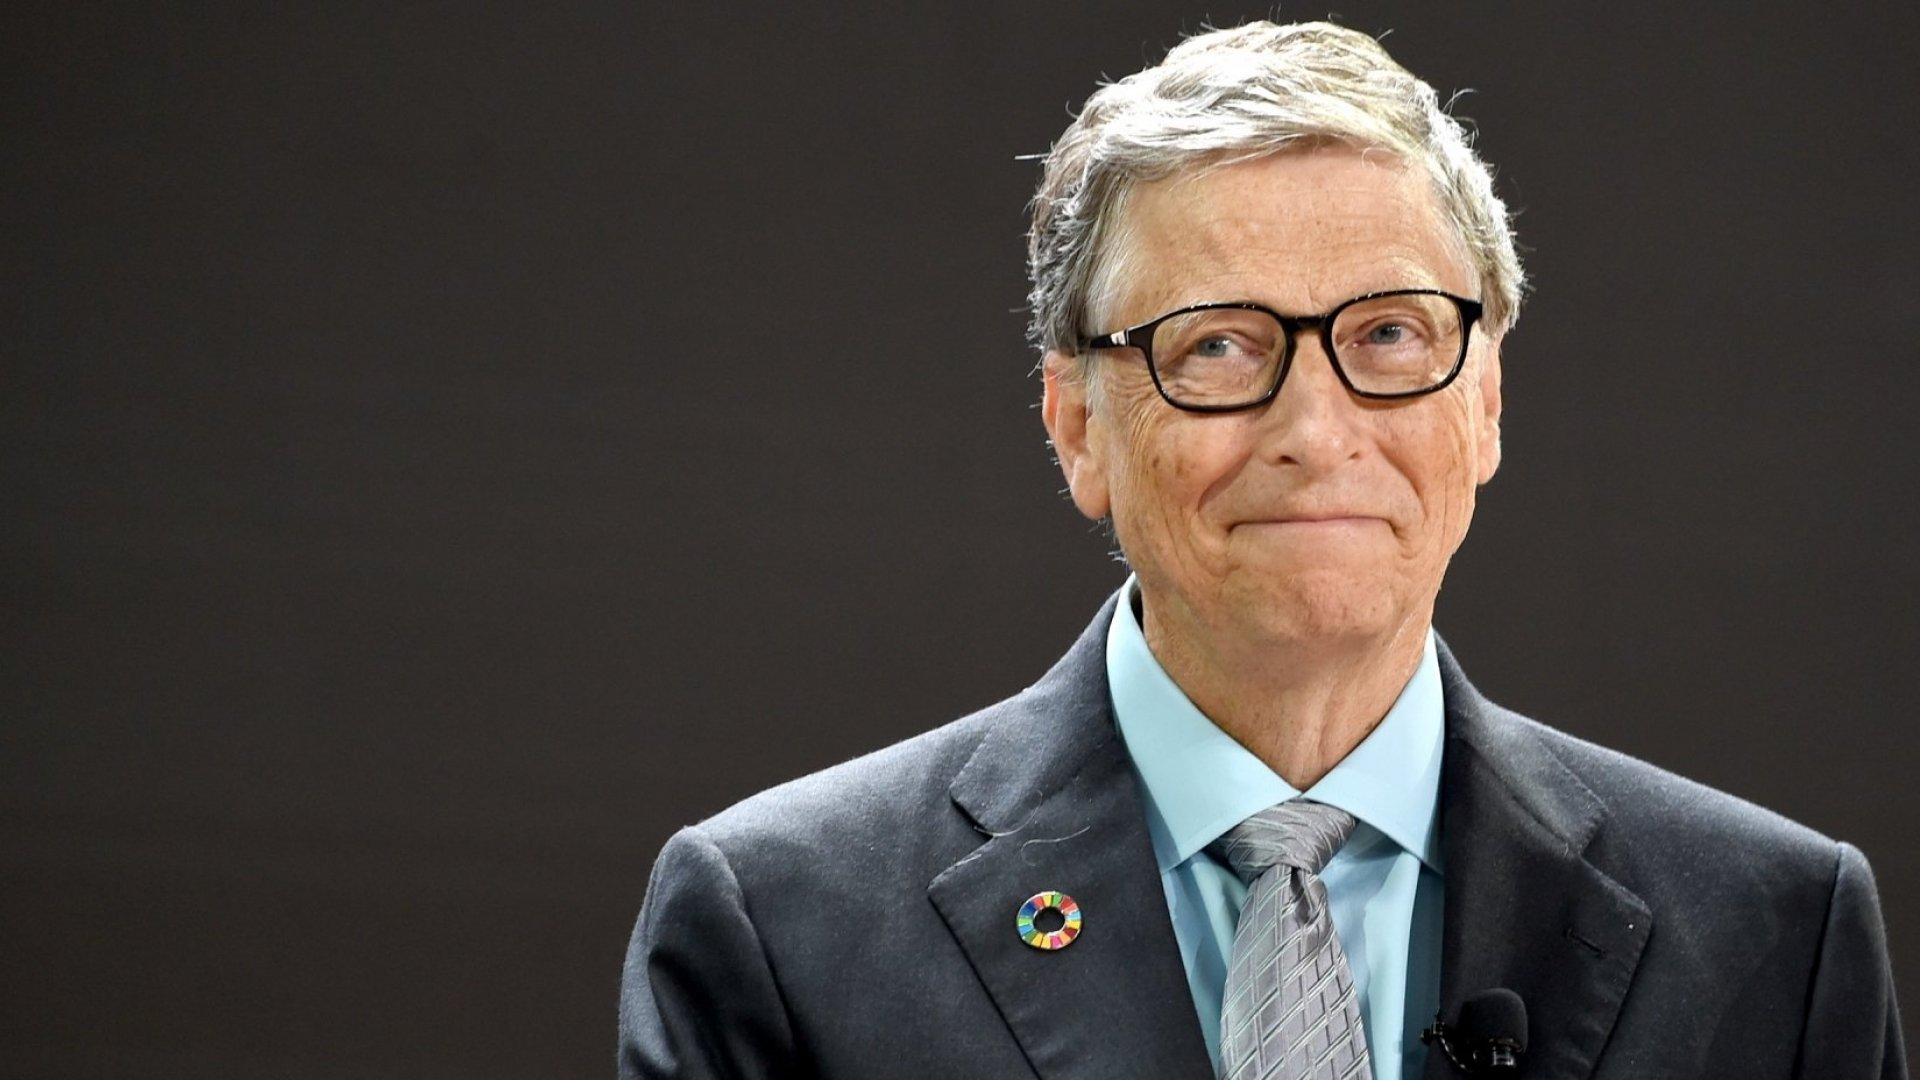 Bill Gates fingered in a new report which claims he was allegedly meeting women and changed cars to cover his tracks